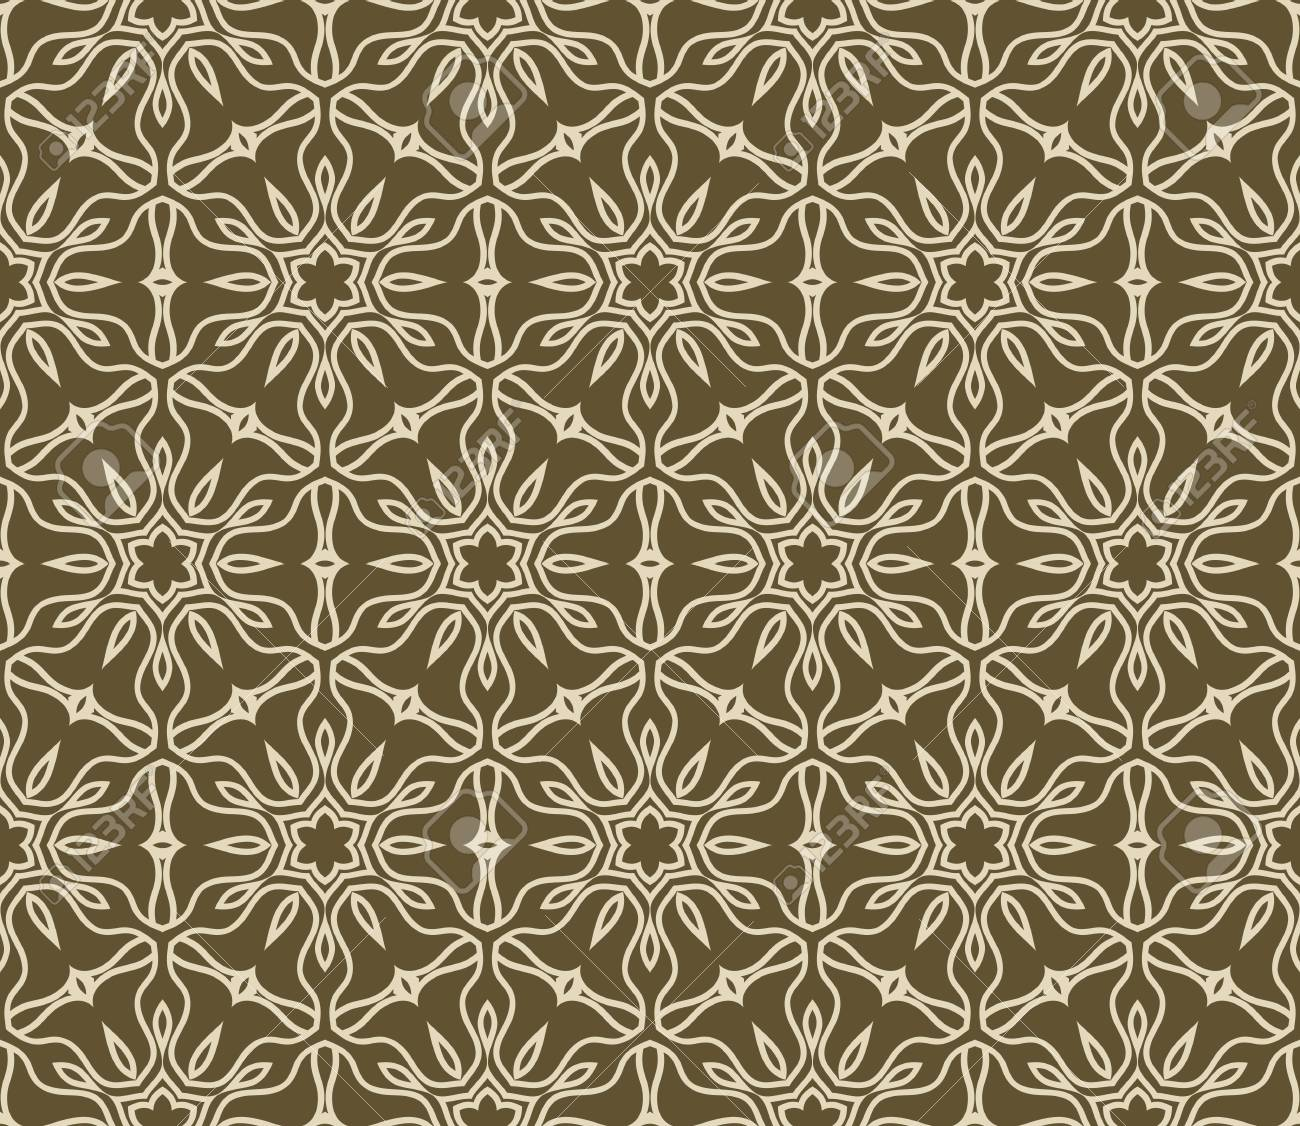 Seamless Lace Floral Background For Interior Decoration Wallpaper Fashion Design Vector Illustration